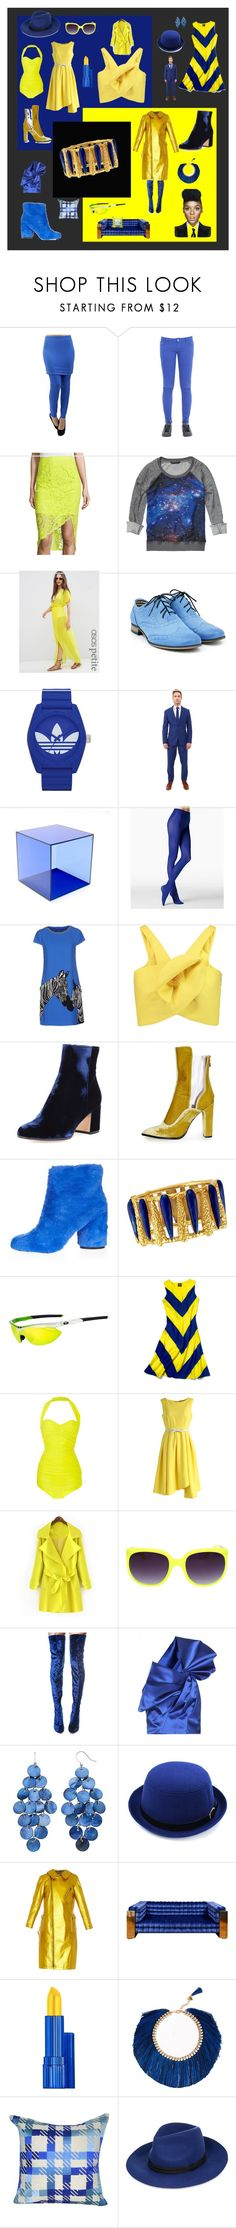 """royal blue & yellow fancy"" by tess-jr ❤ liked on Polyvore featuring CYCLE, Bisou Bisou, Scotch & Soda, ASOS, adidas, OppoSuits, Haziza, Fogal, Alice + Olivia and Delpozo"